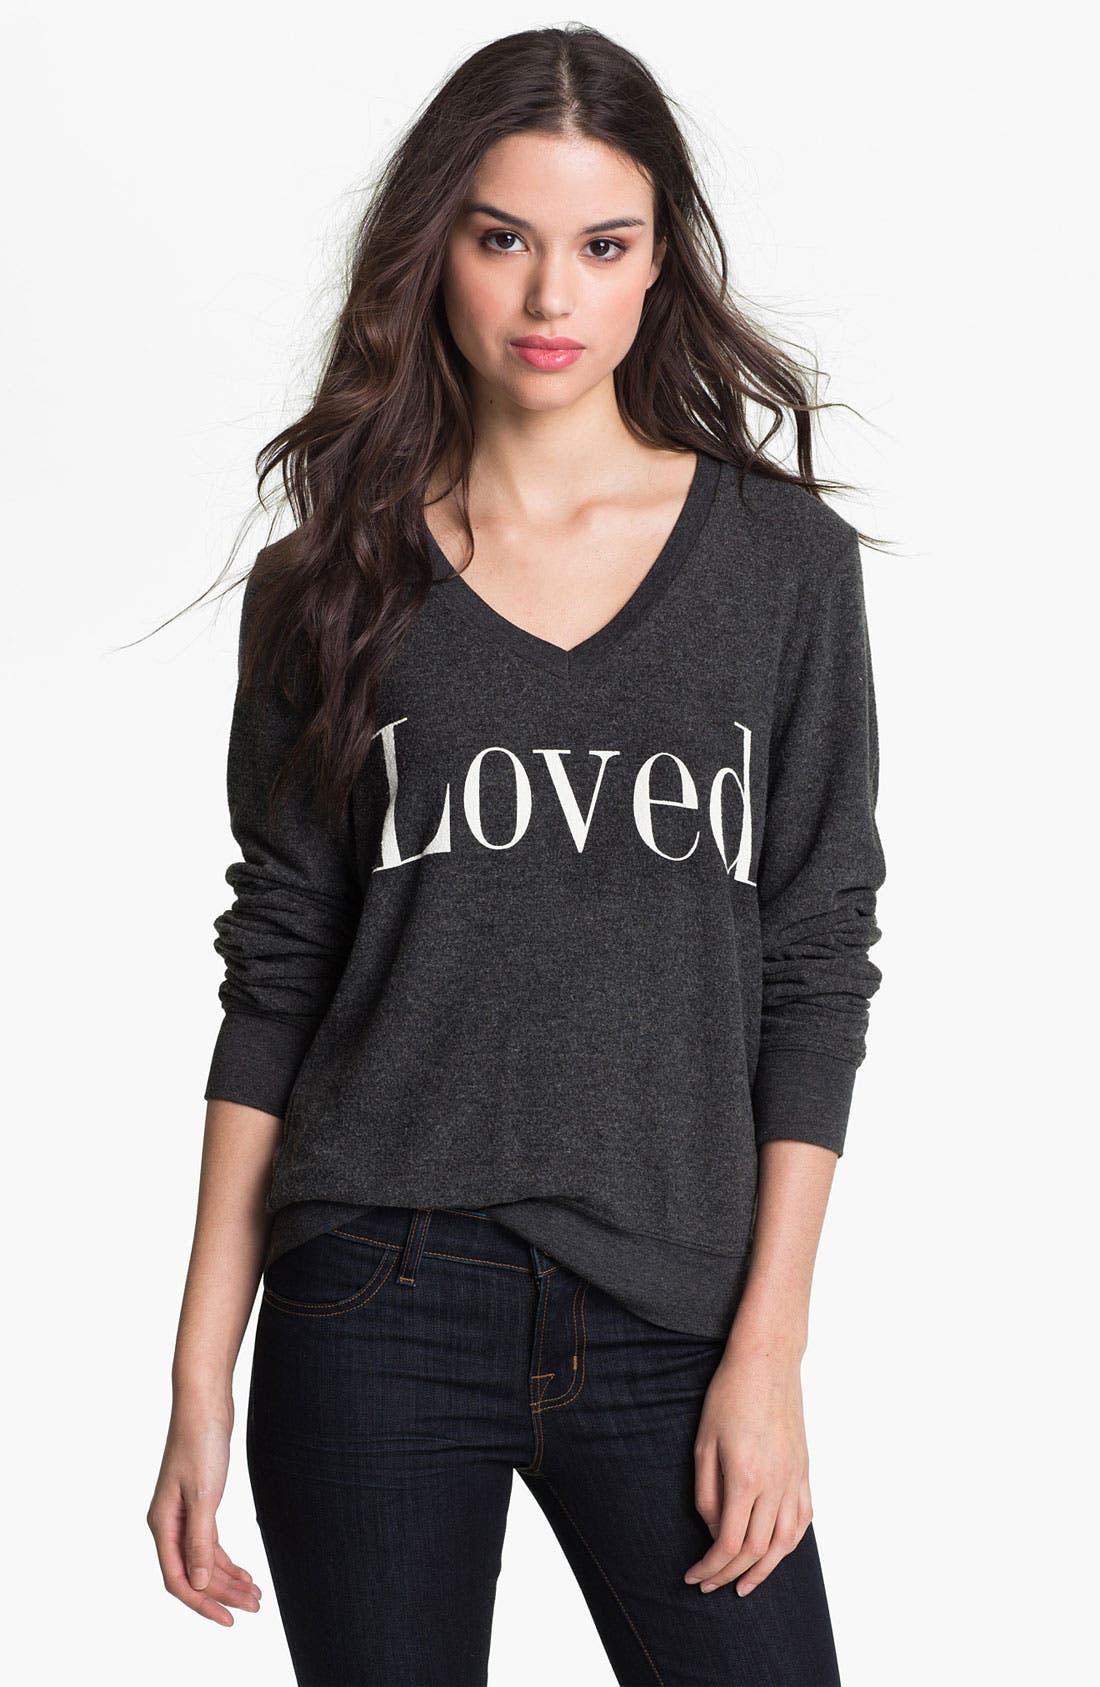 Alternate Image 1 Selected - Wildfox 'Loved' Graphic Sweatshirt